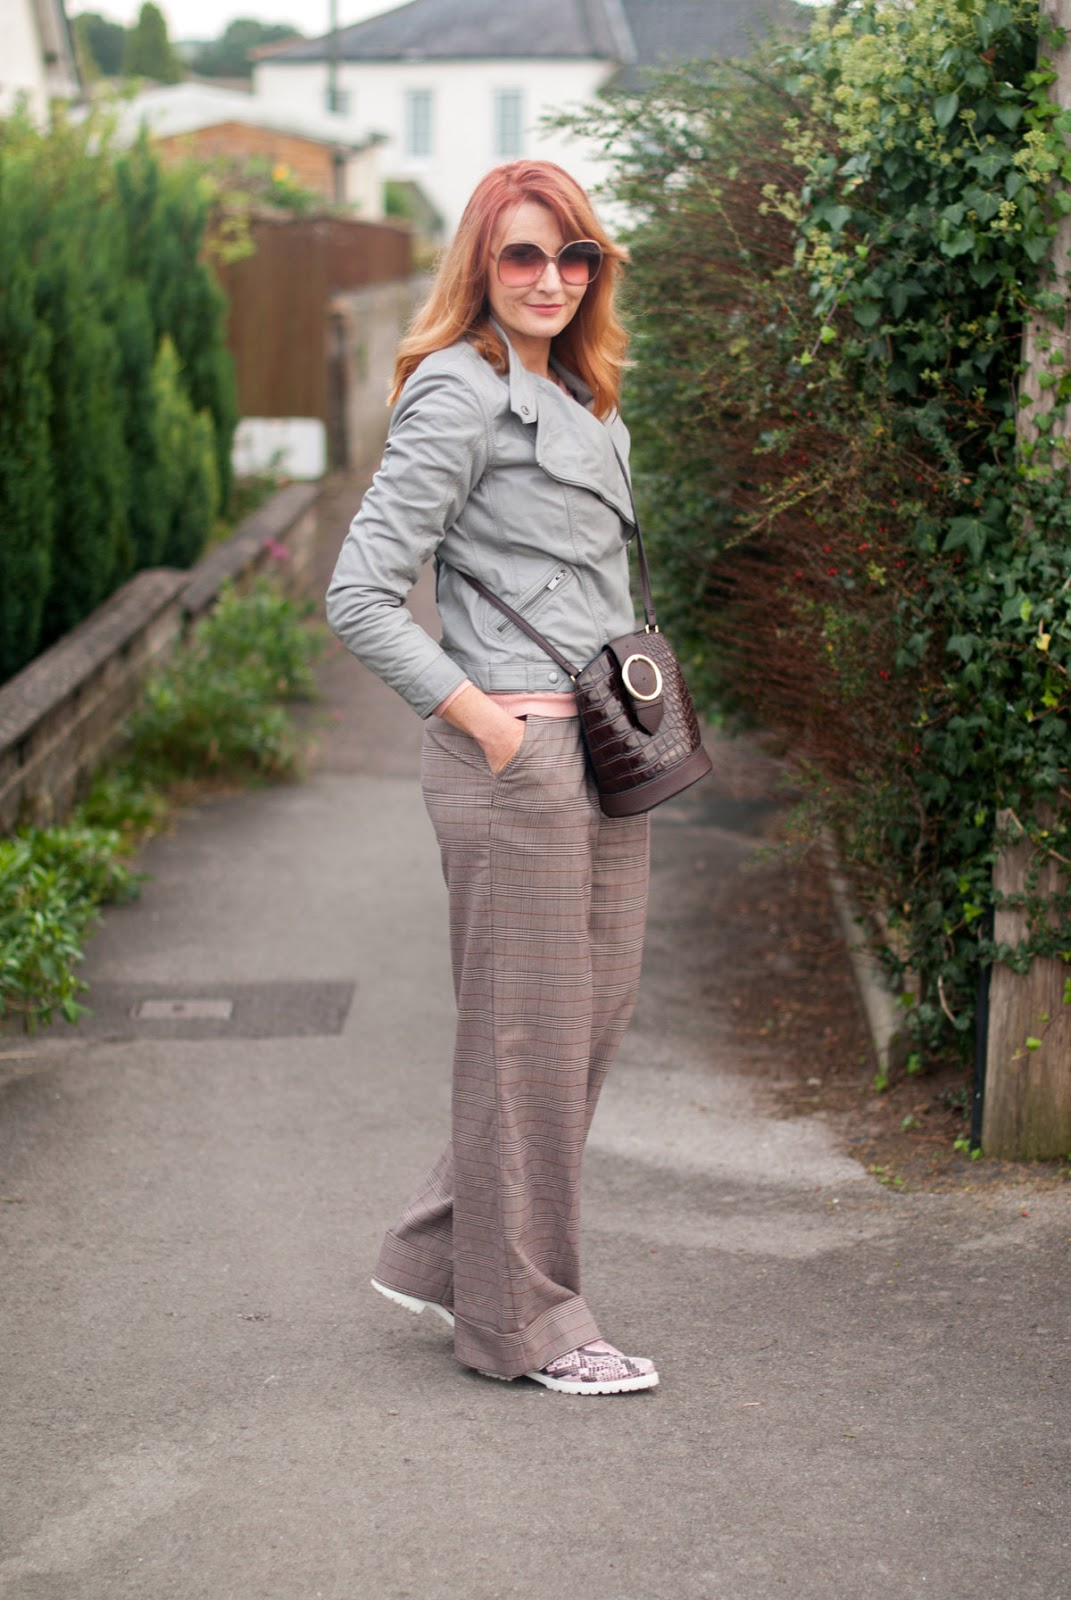 Smart but comfy autumnal dressing: Grey leather biker jacket \ millennial pink sweater \ brown check wide leg pants \ pink snakeskin shoes | Not Dressed As Lamb, over 40 style